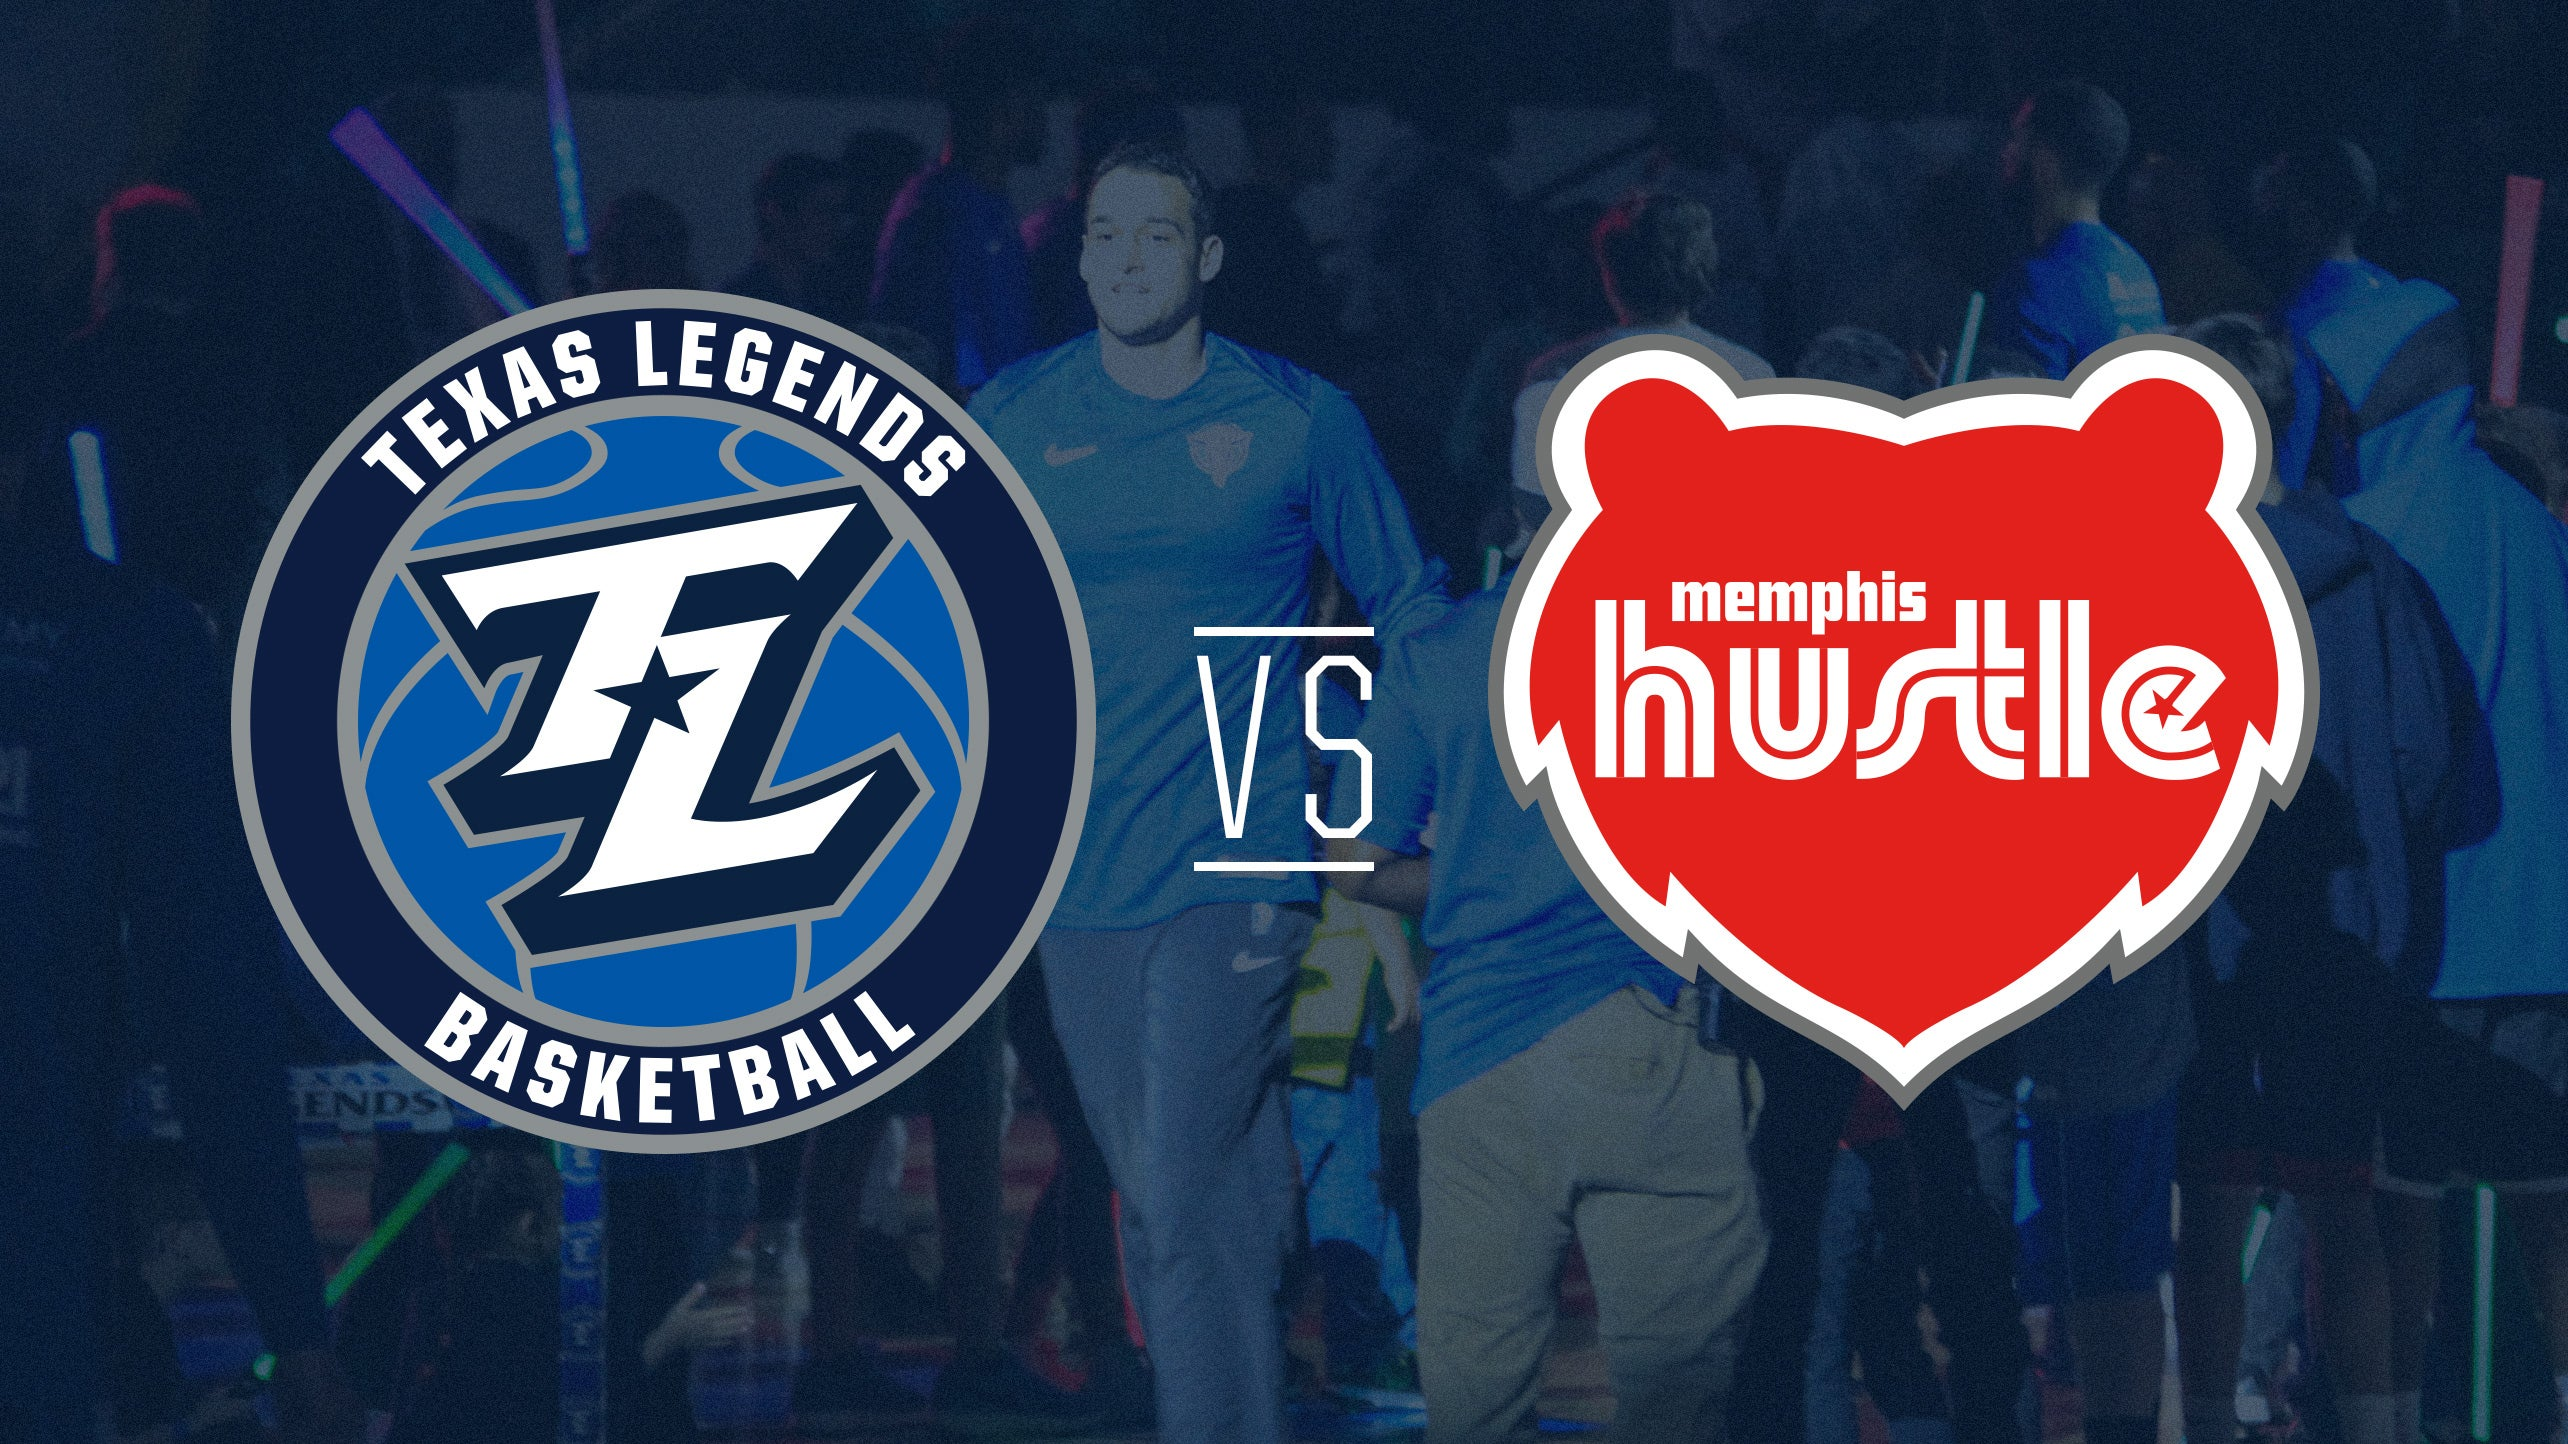 Texas Legends vs Memphis Hustle